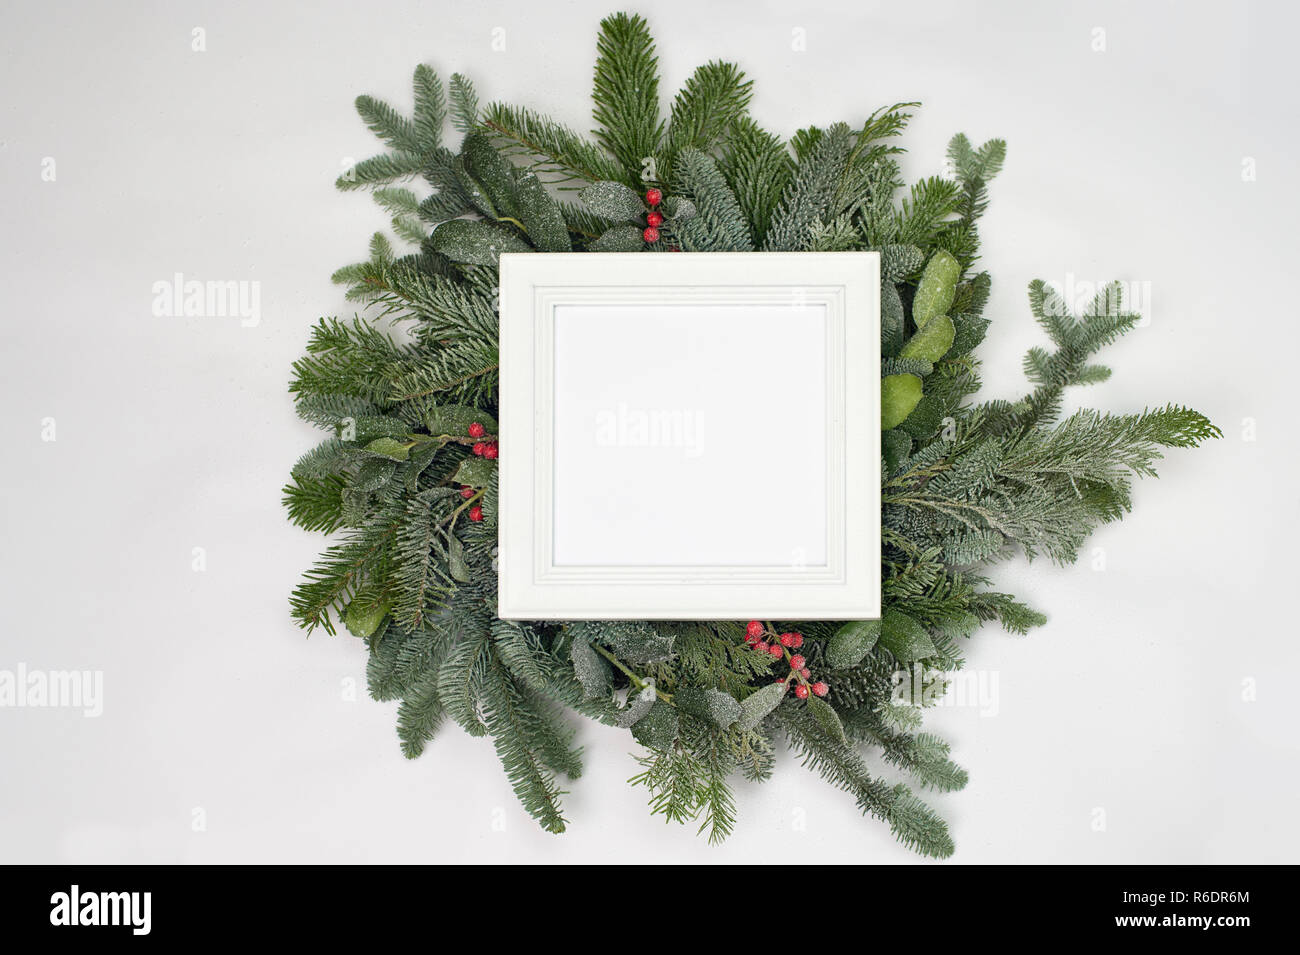 A circle of branches of different fir varieties. Green and blue firs. A white frame with copy space. - Stock Image